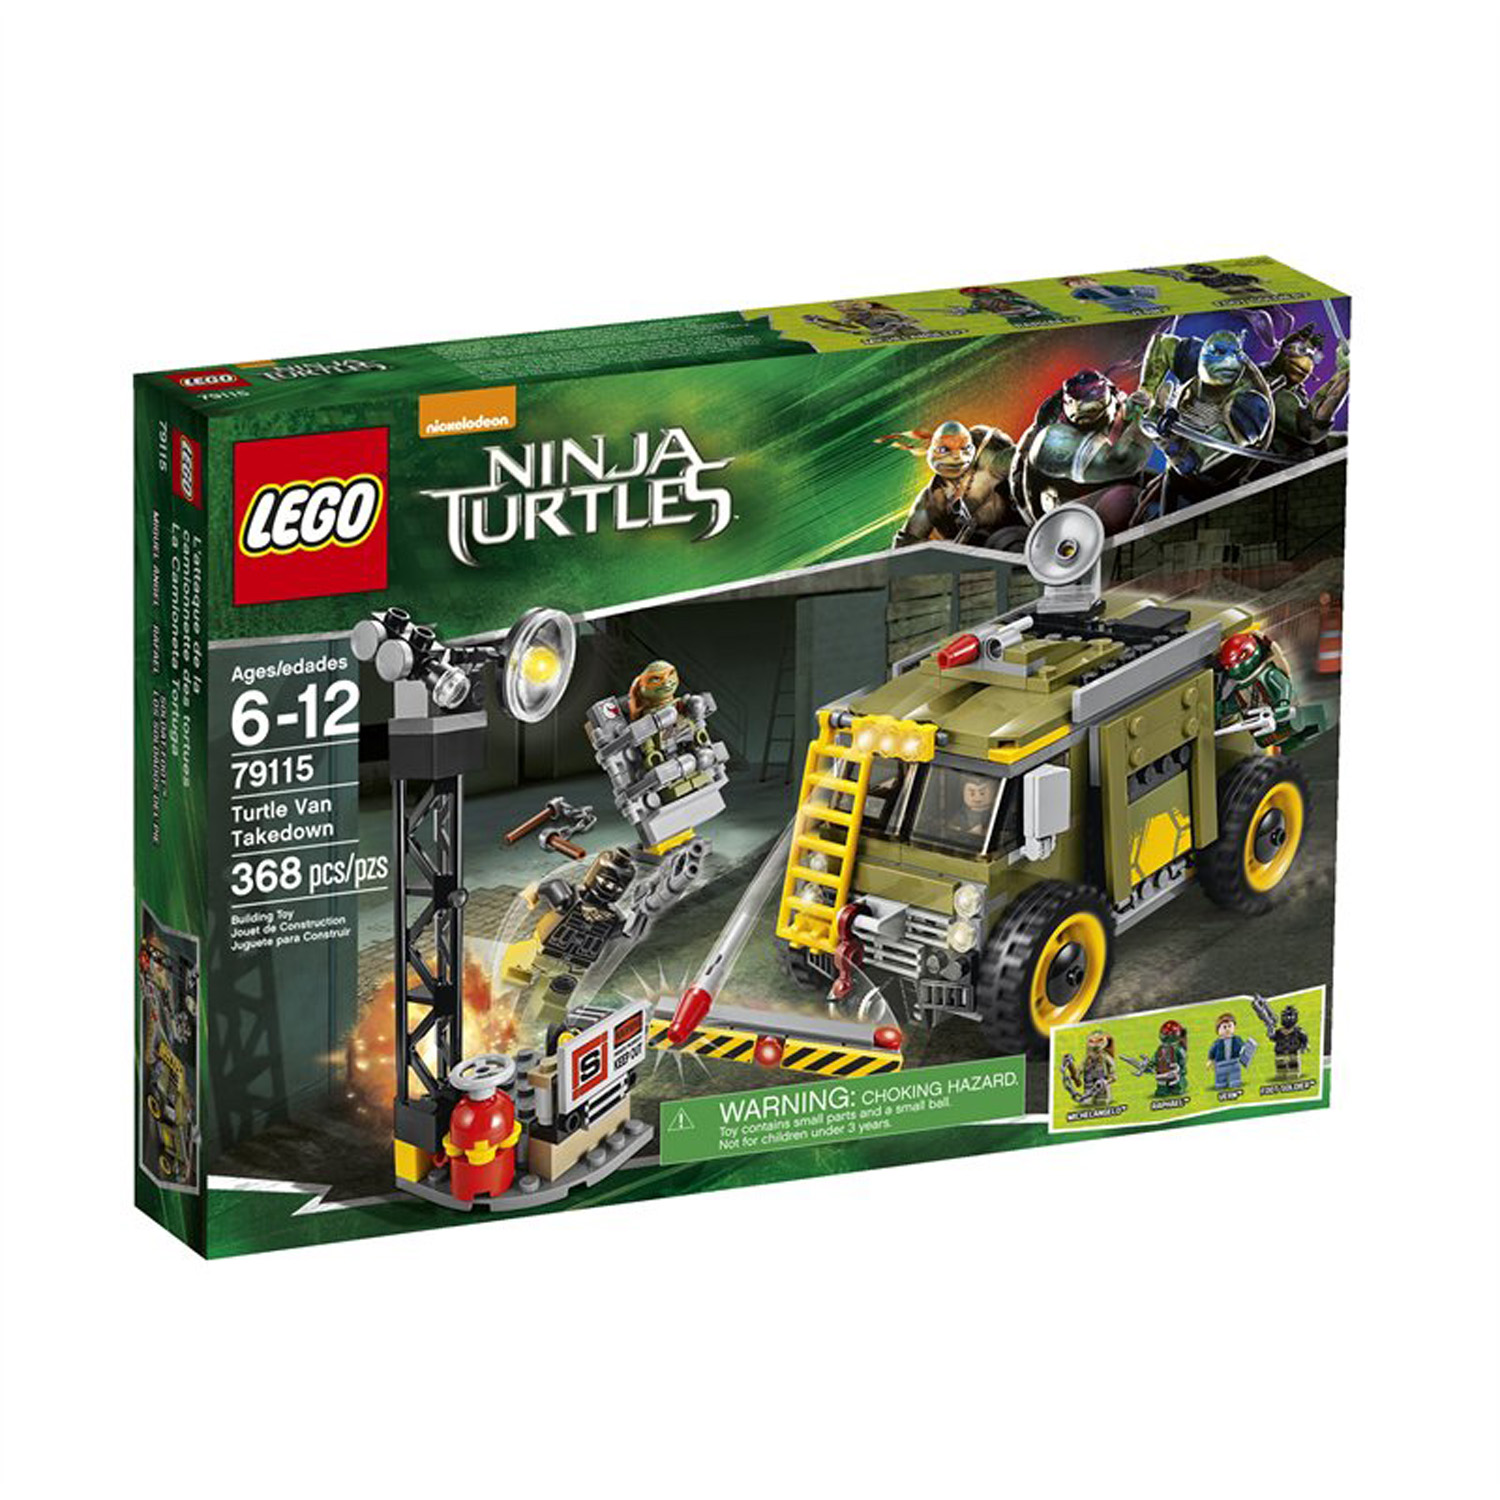 LEGO x Teenage Mutant Ninja Turtles Movie Set 1